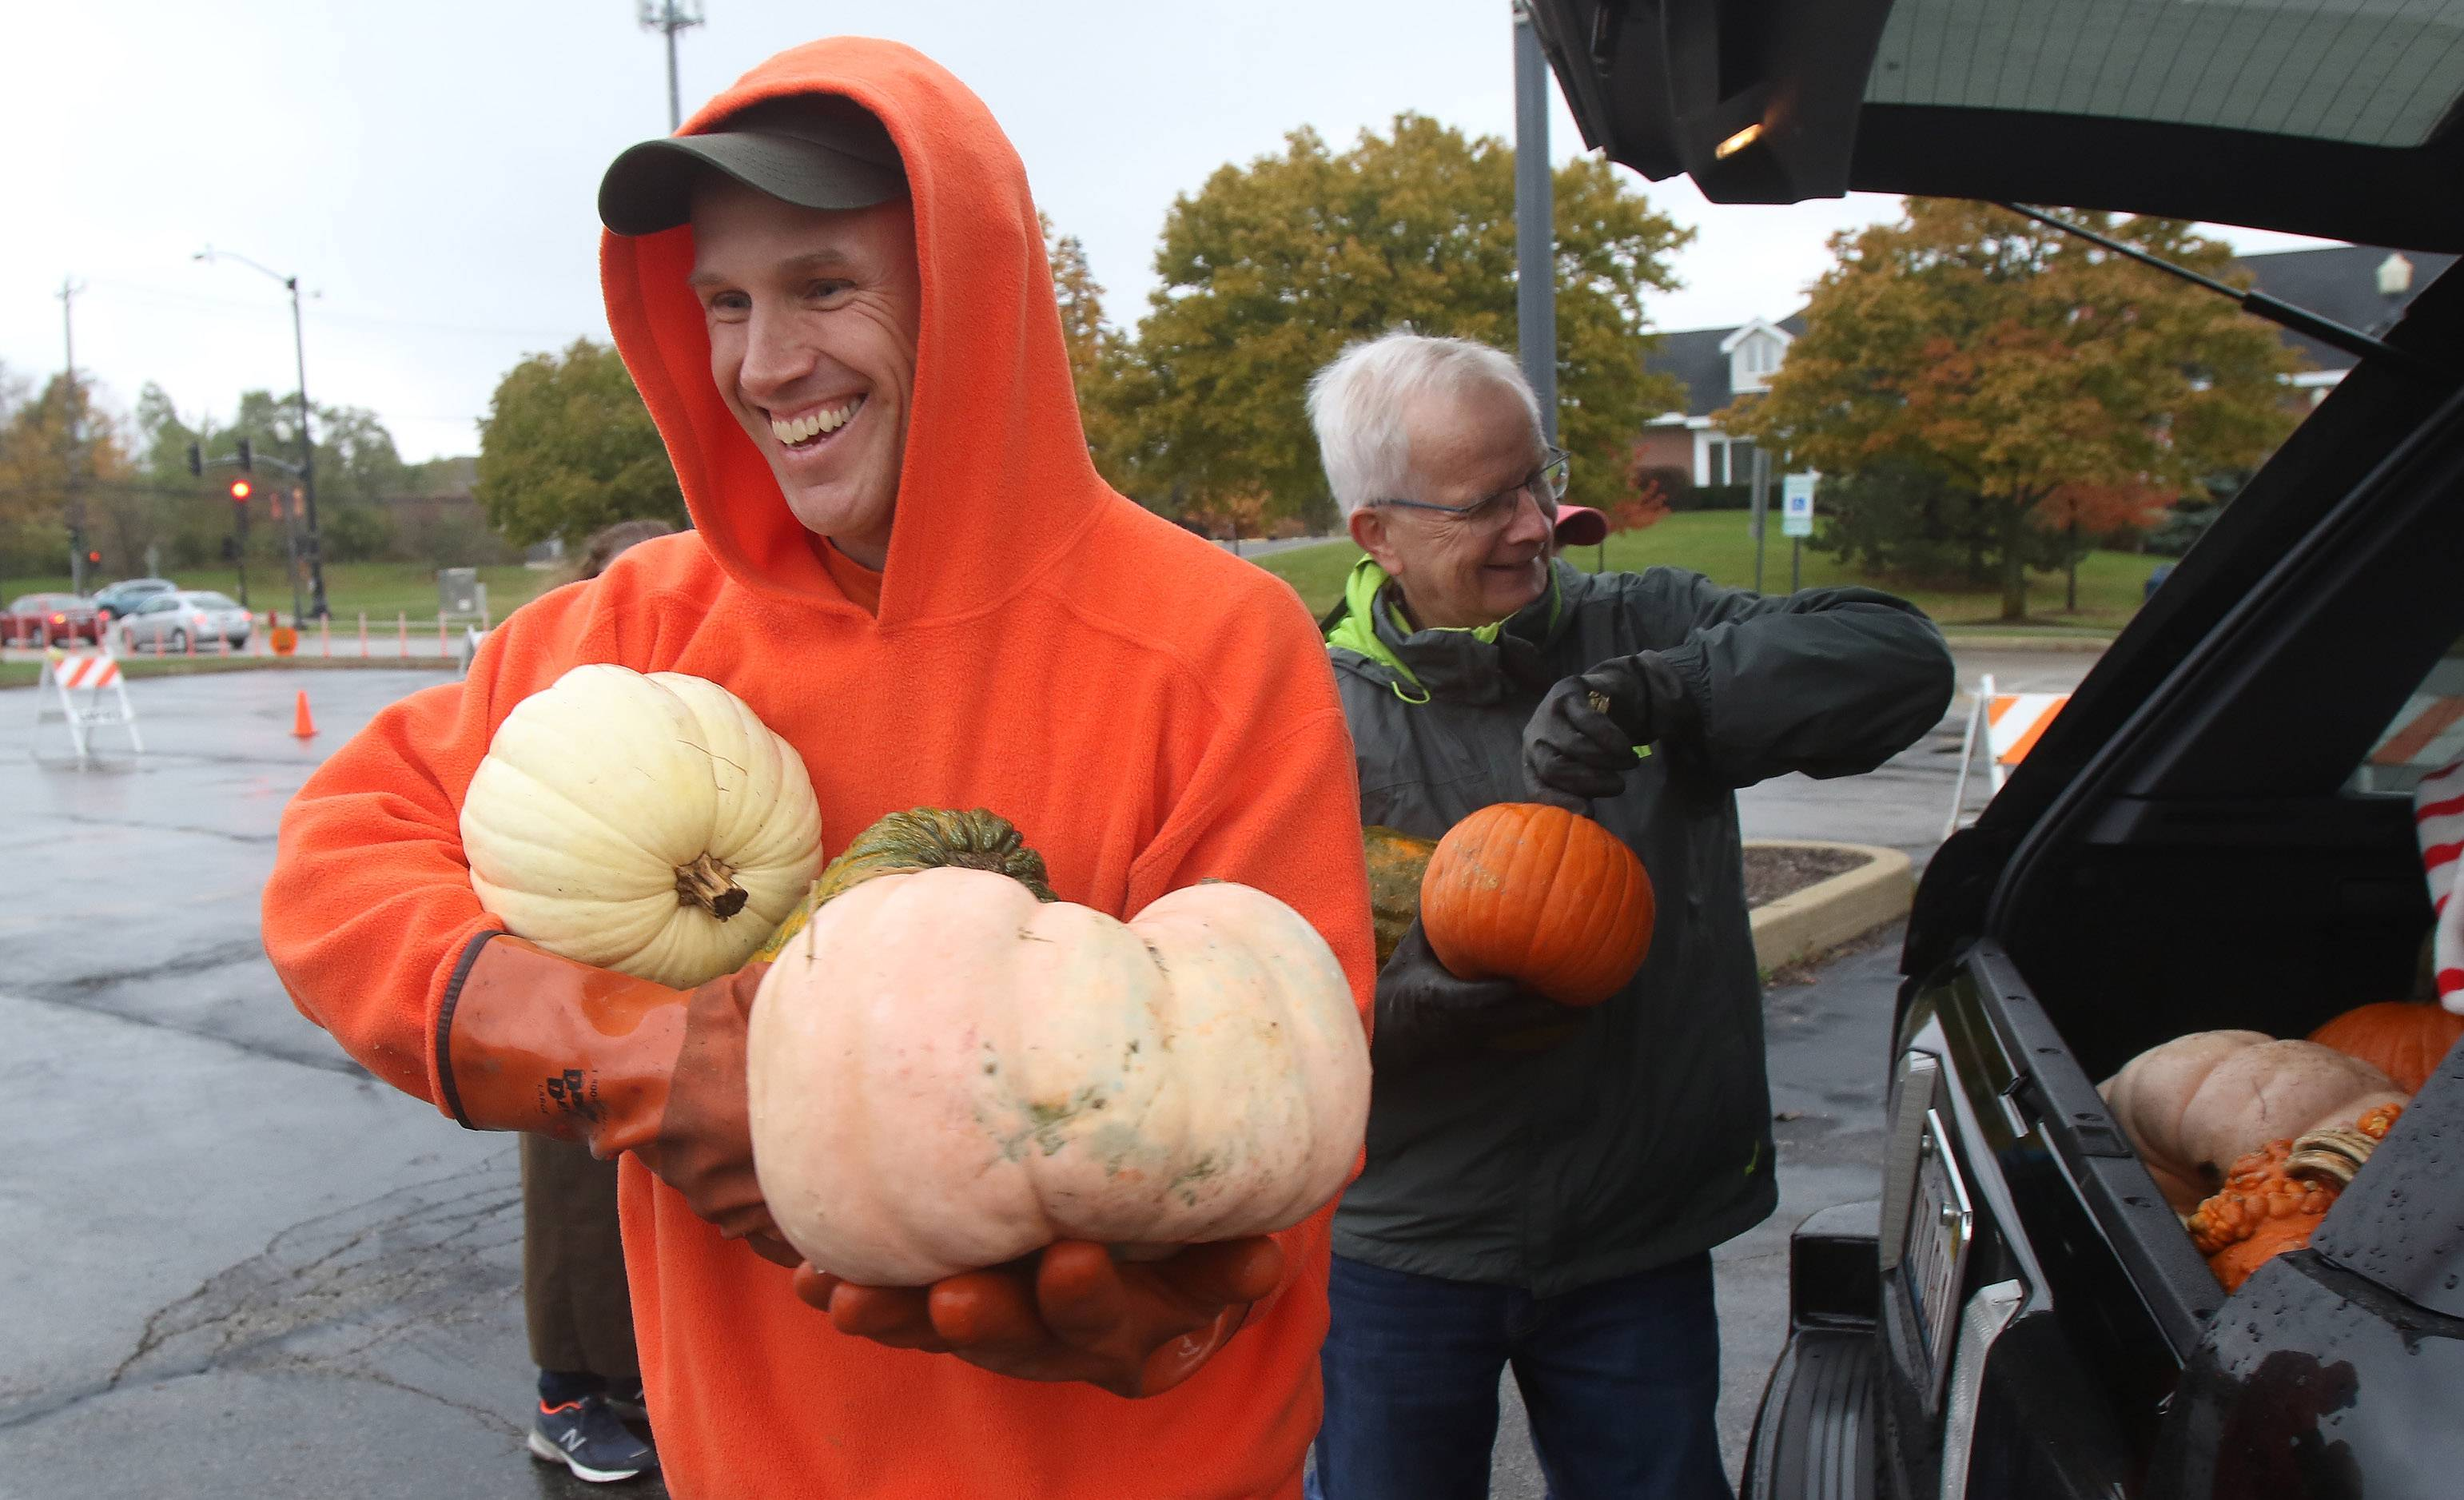 Composting specialist Vytas Pabedinskas of Grayslake, left, and Art Nelson of Lake Forest unload pumpkins from a car as they collected for composting at the Mundelein Community Center on Sunday. The traditional pumpkin roll and pumpkin catapult were canceled due to weather.